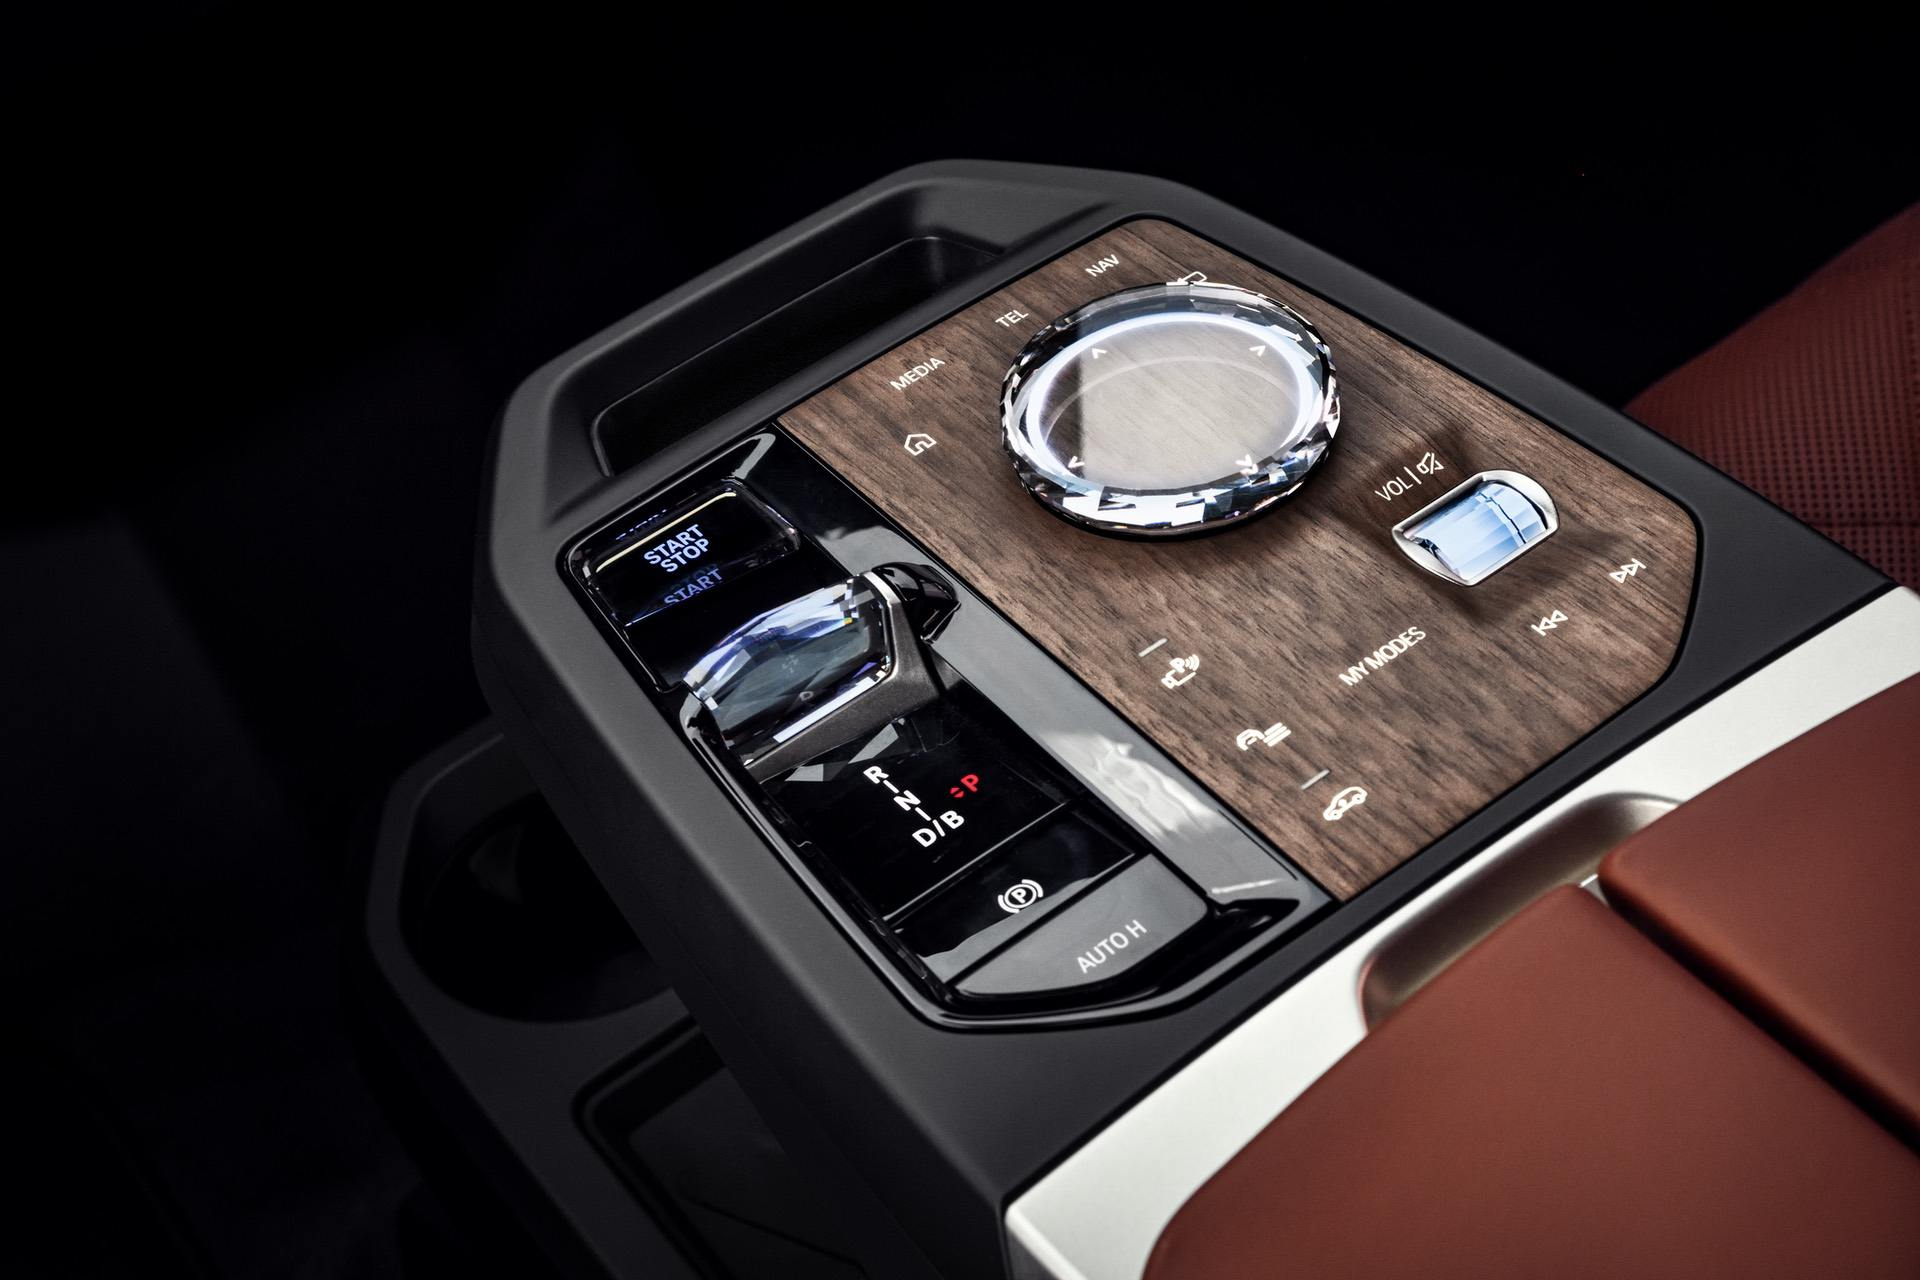 2022-bmw-ix-interior-23.jpg